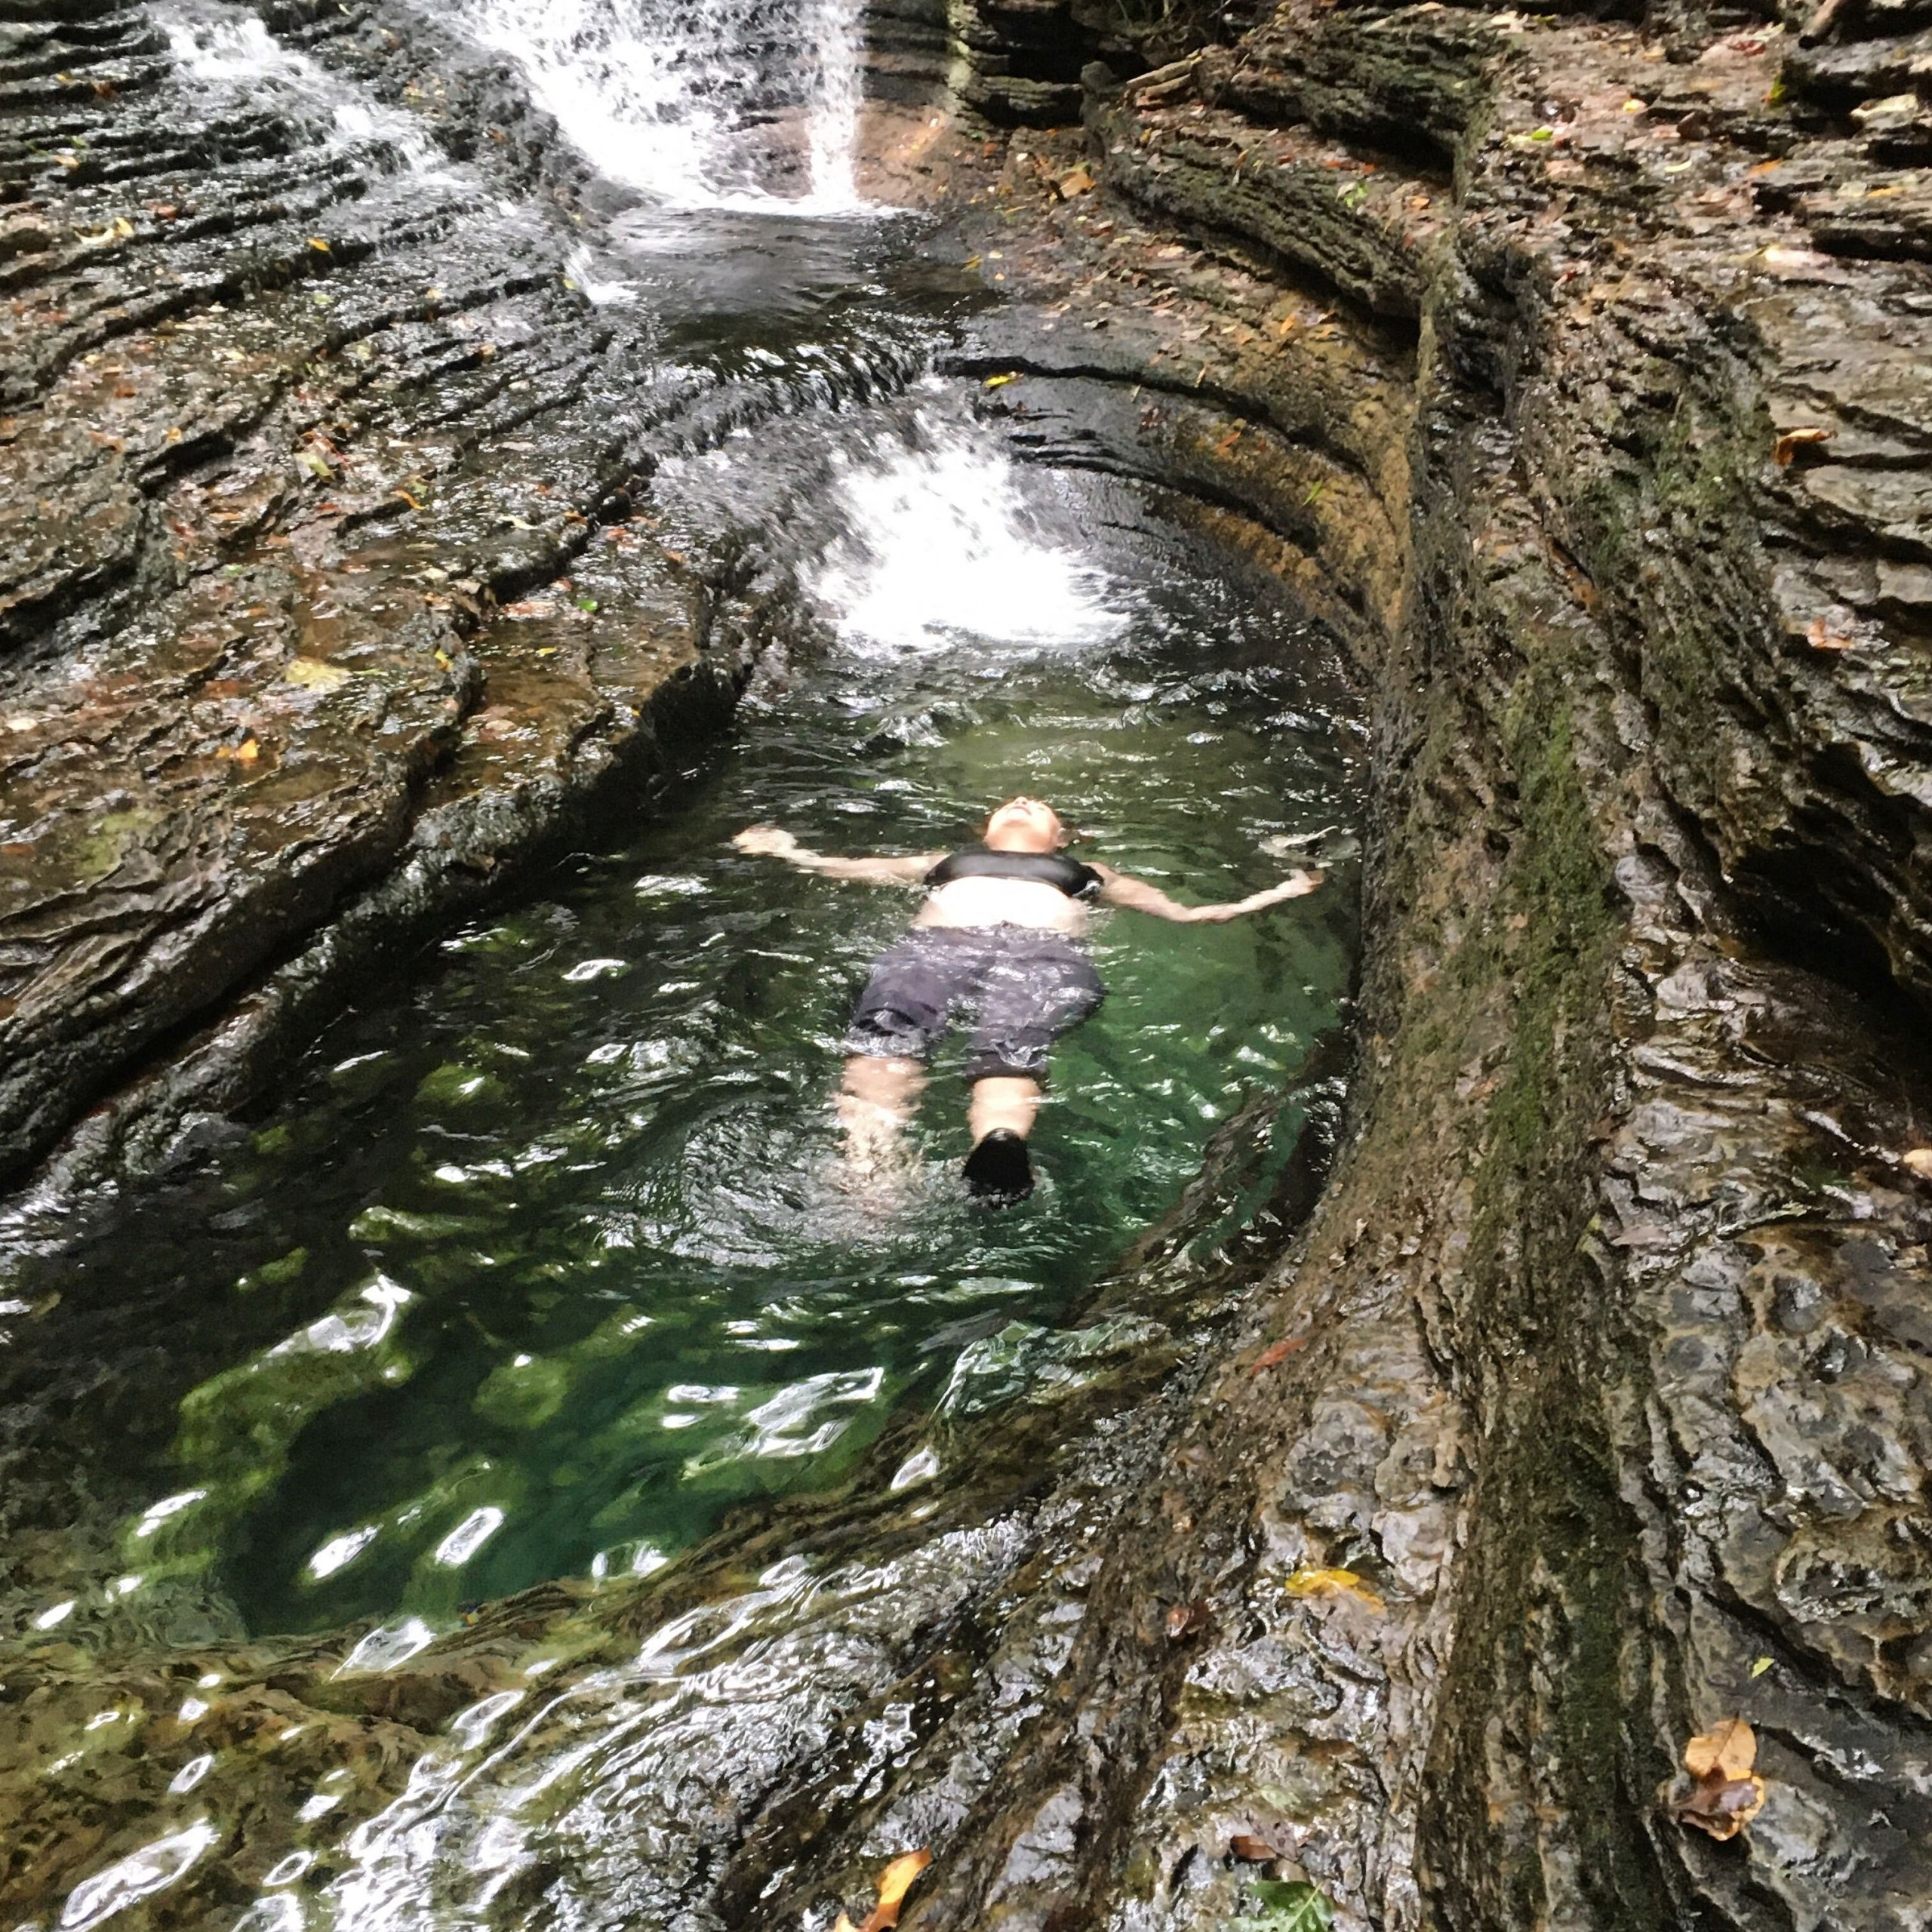 Swimming in the Devil's Bathtub